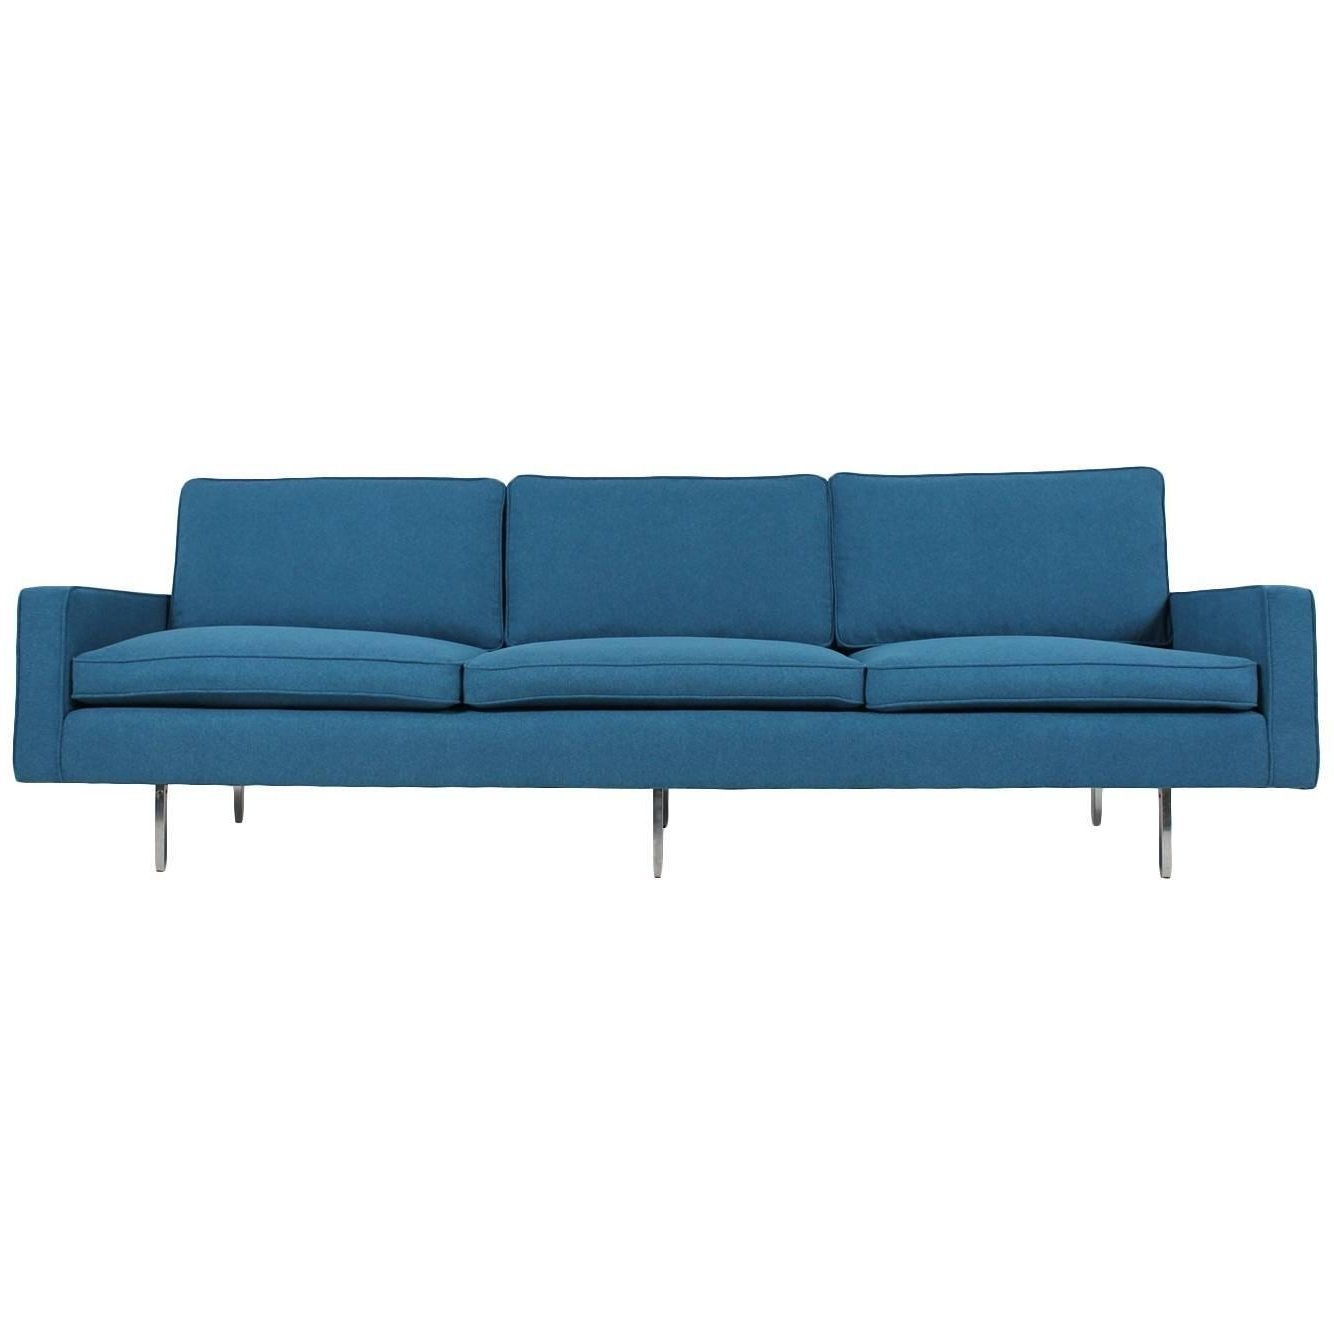 Most Popular Florence Sofas And Loveseats With Regard To Florence Knoll Sofas – 61 For Sale At 1Stdibs (View 9 of 15)